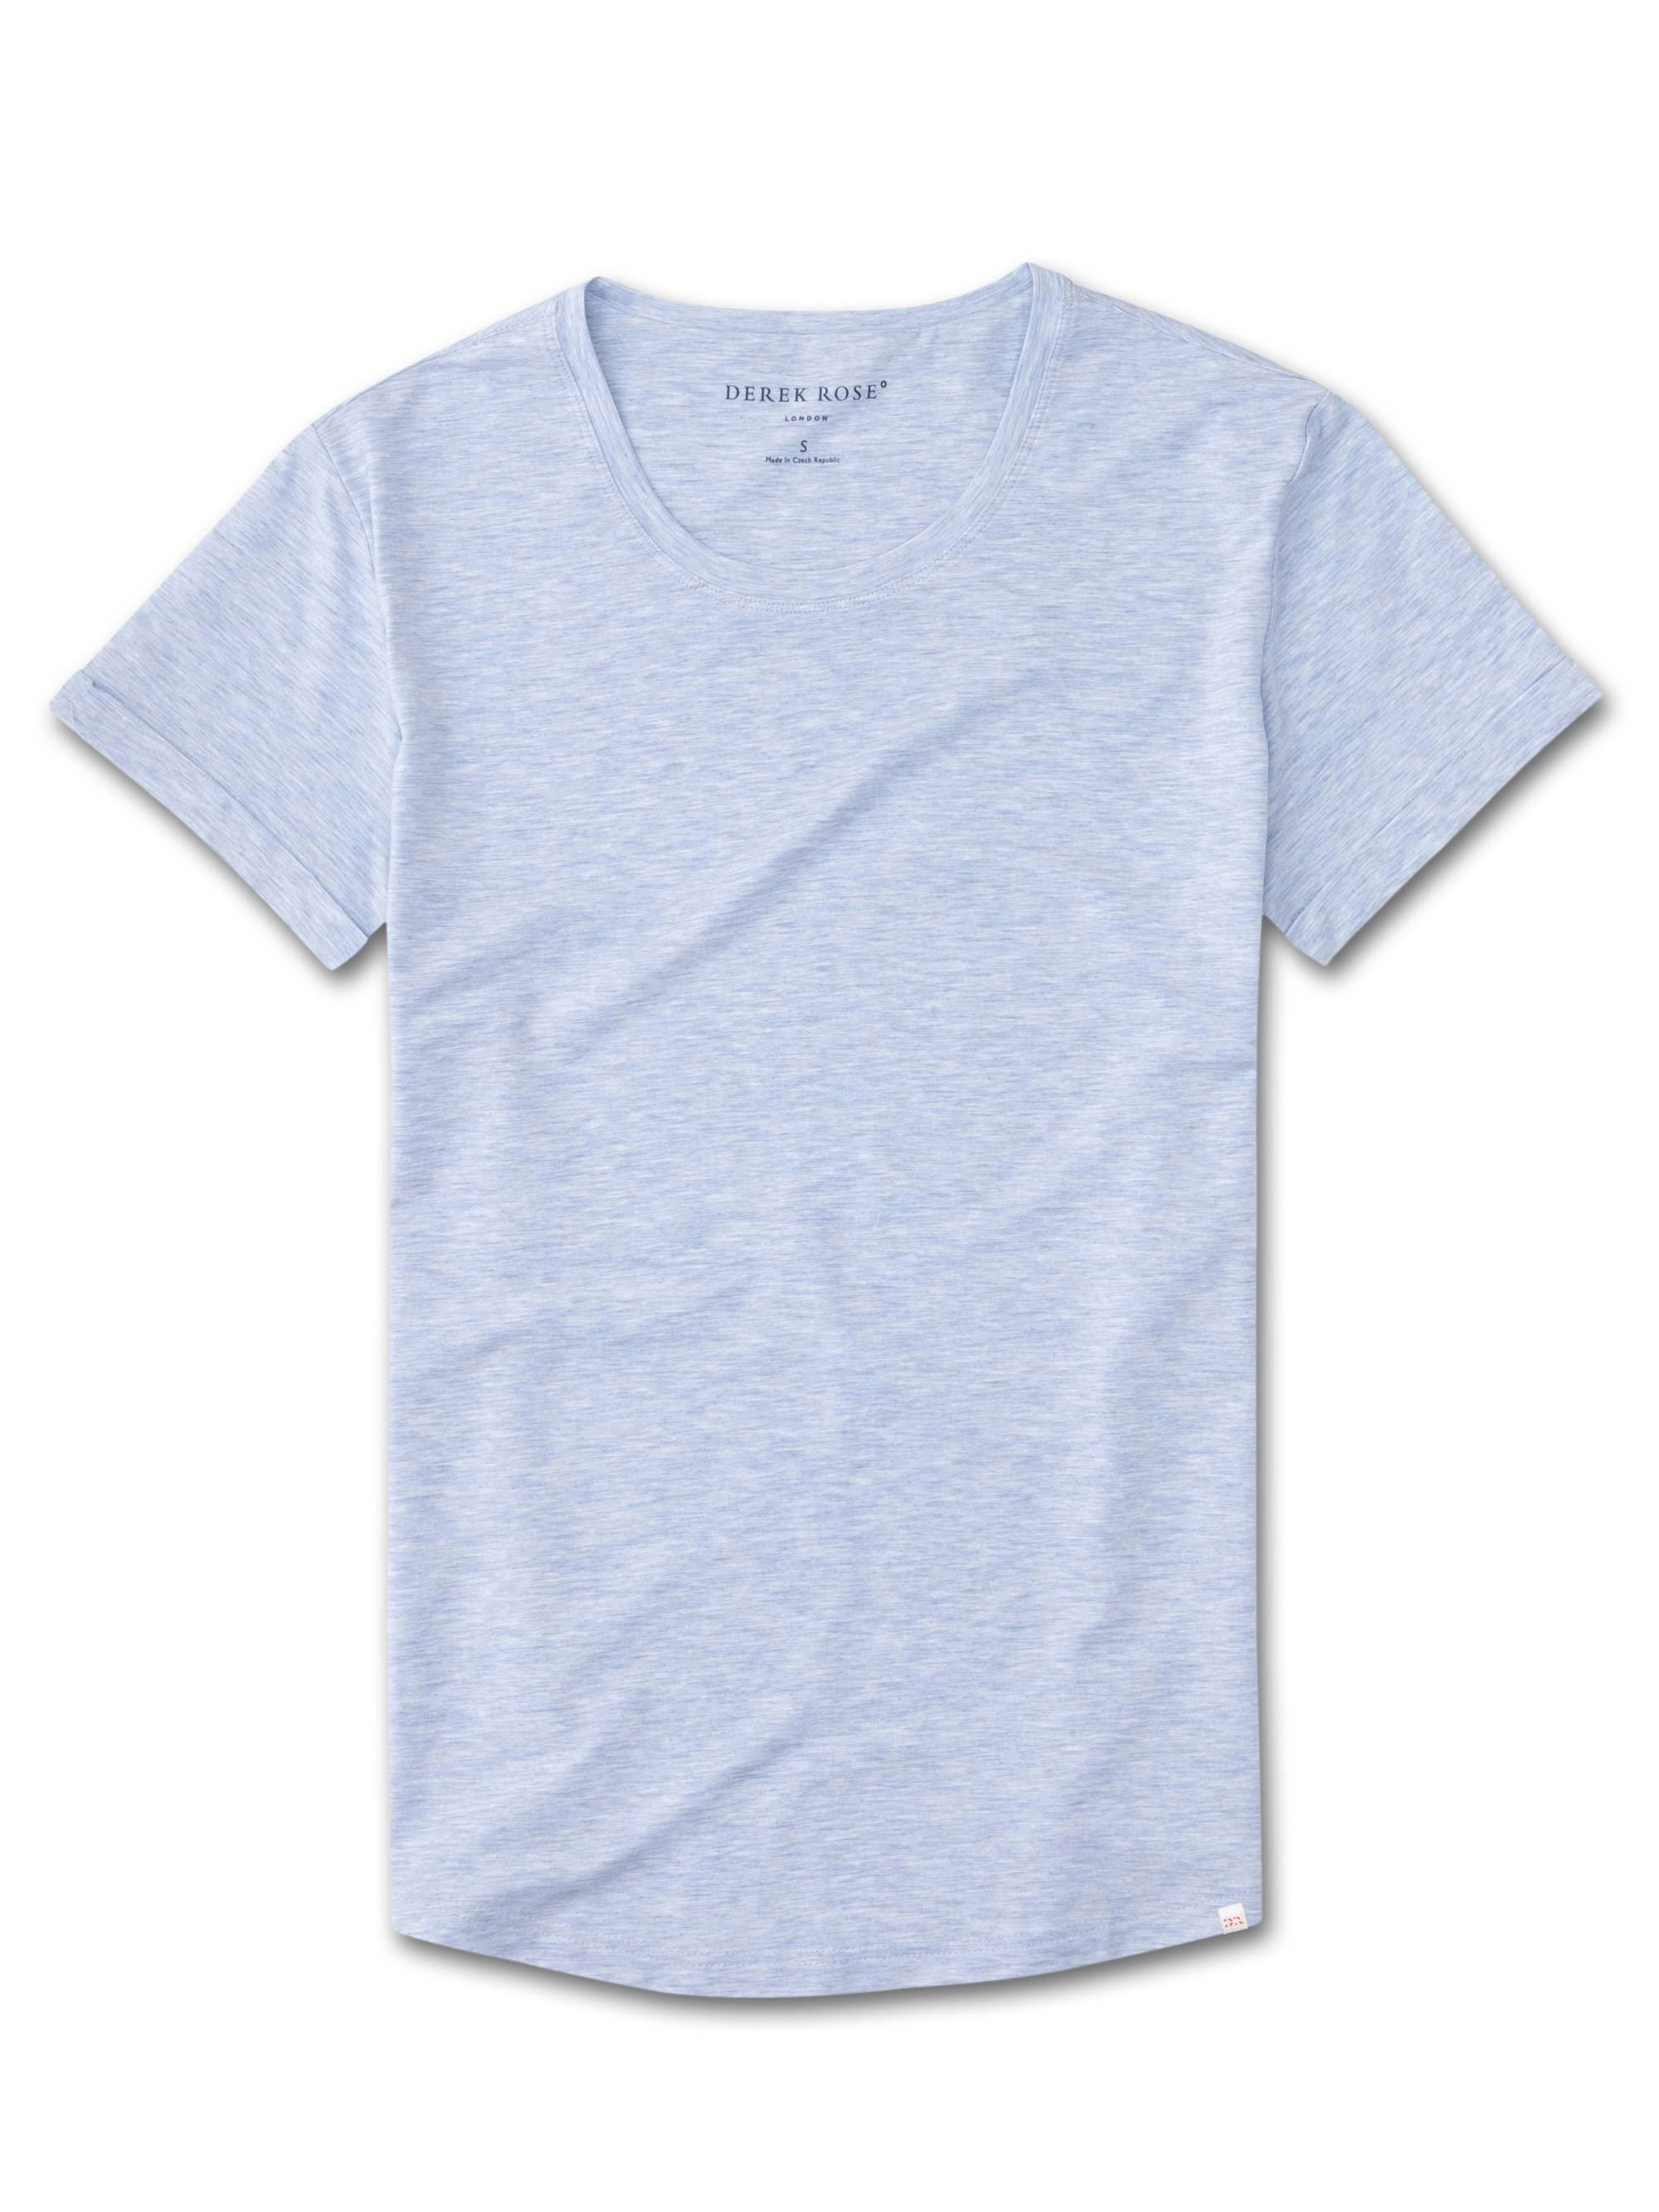 Women's Leisure T-Shirt Ethan Micro Modal Stretch Blue